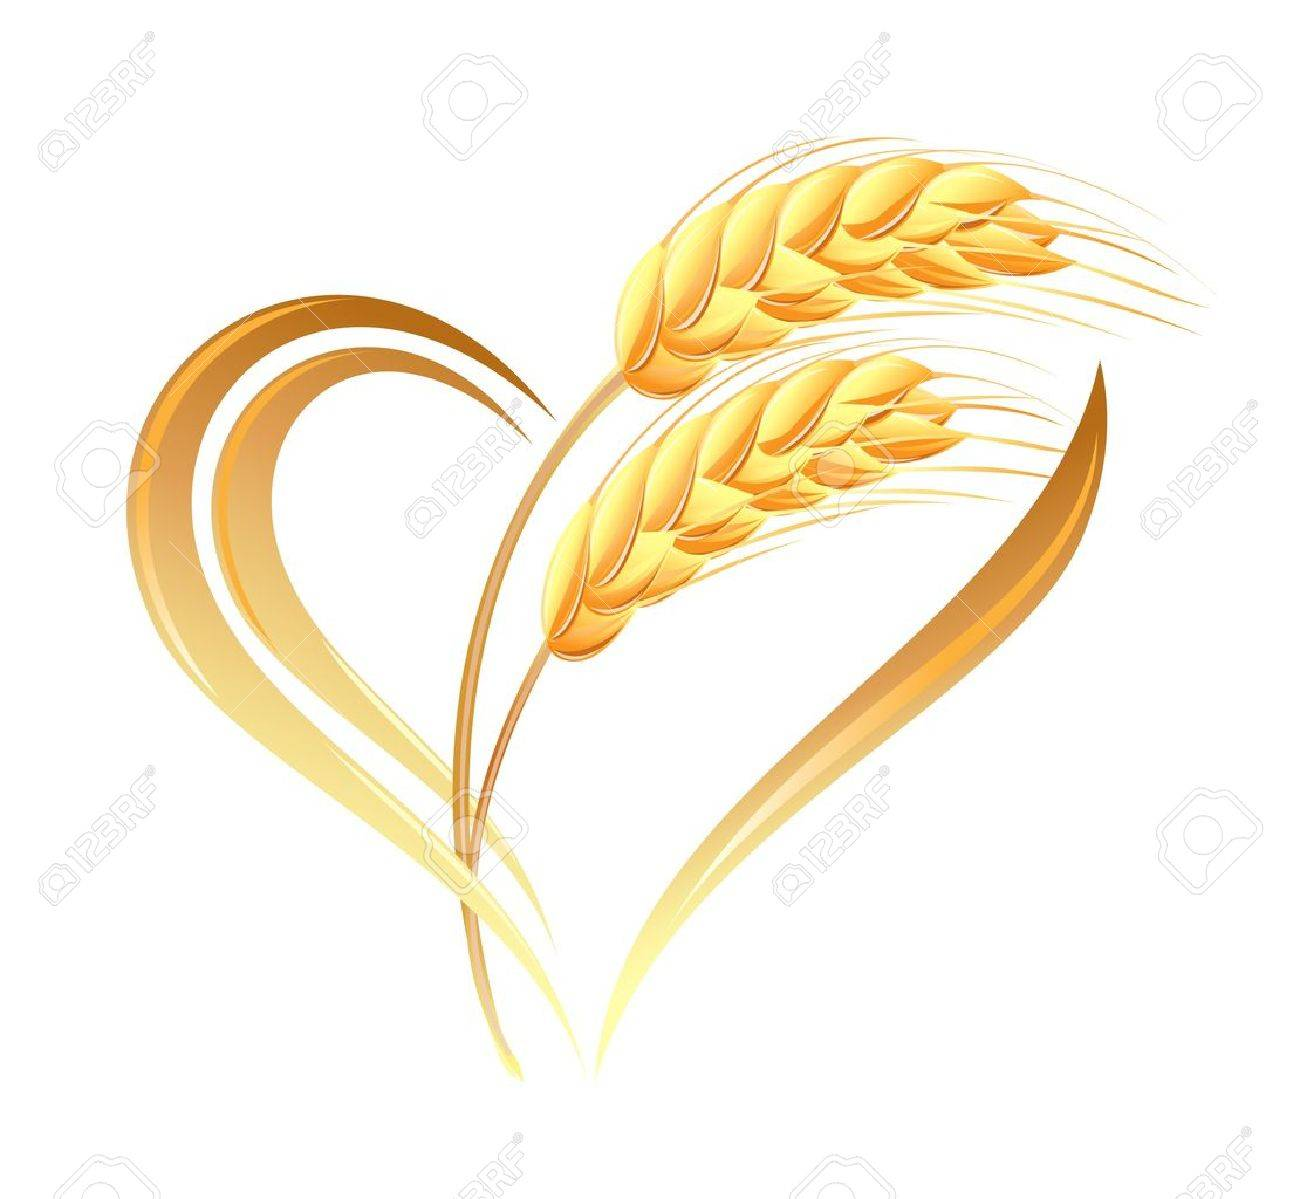 Abstract wheat ears icon with heart element Stock Vector - 15251902